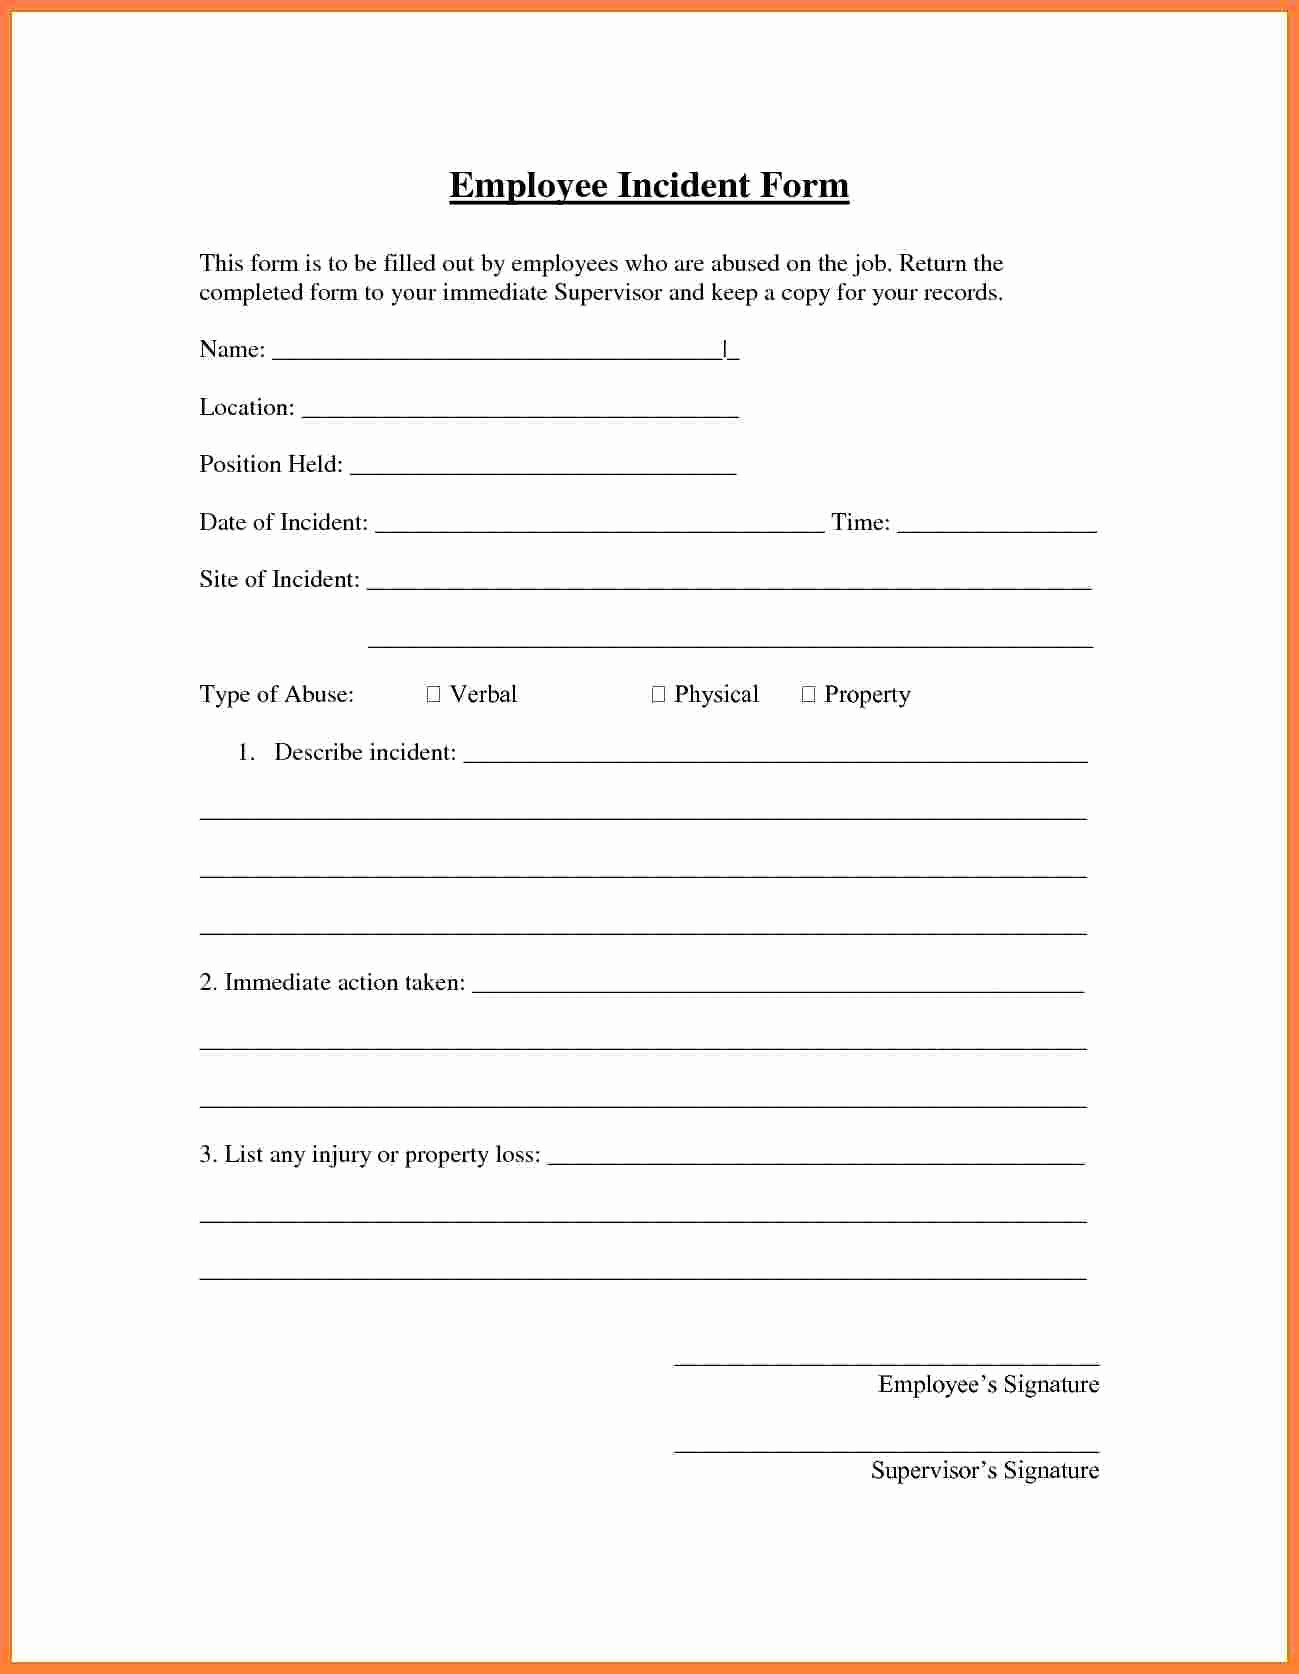 Accident Reporting form Template Best Of 6 Employee Accident Report form Template